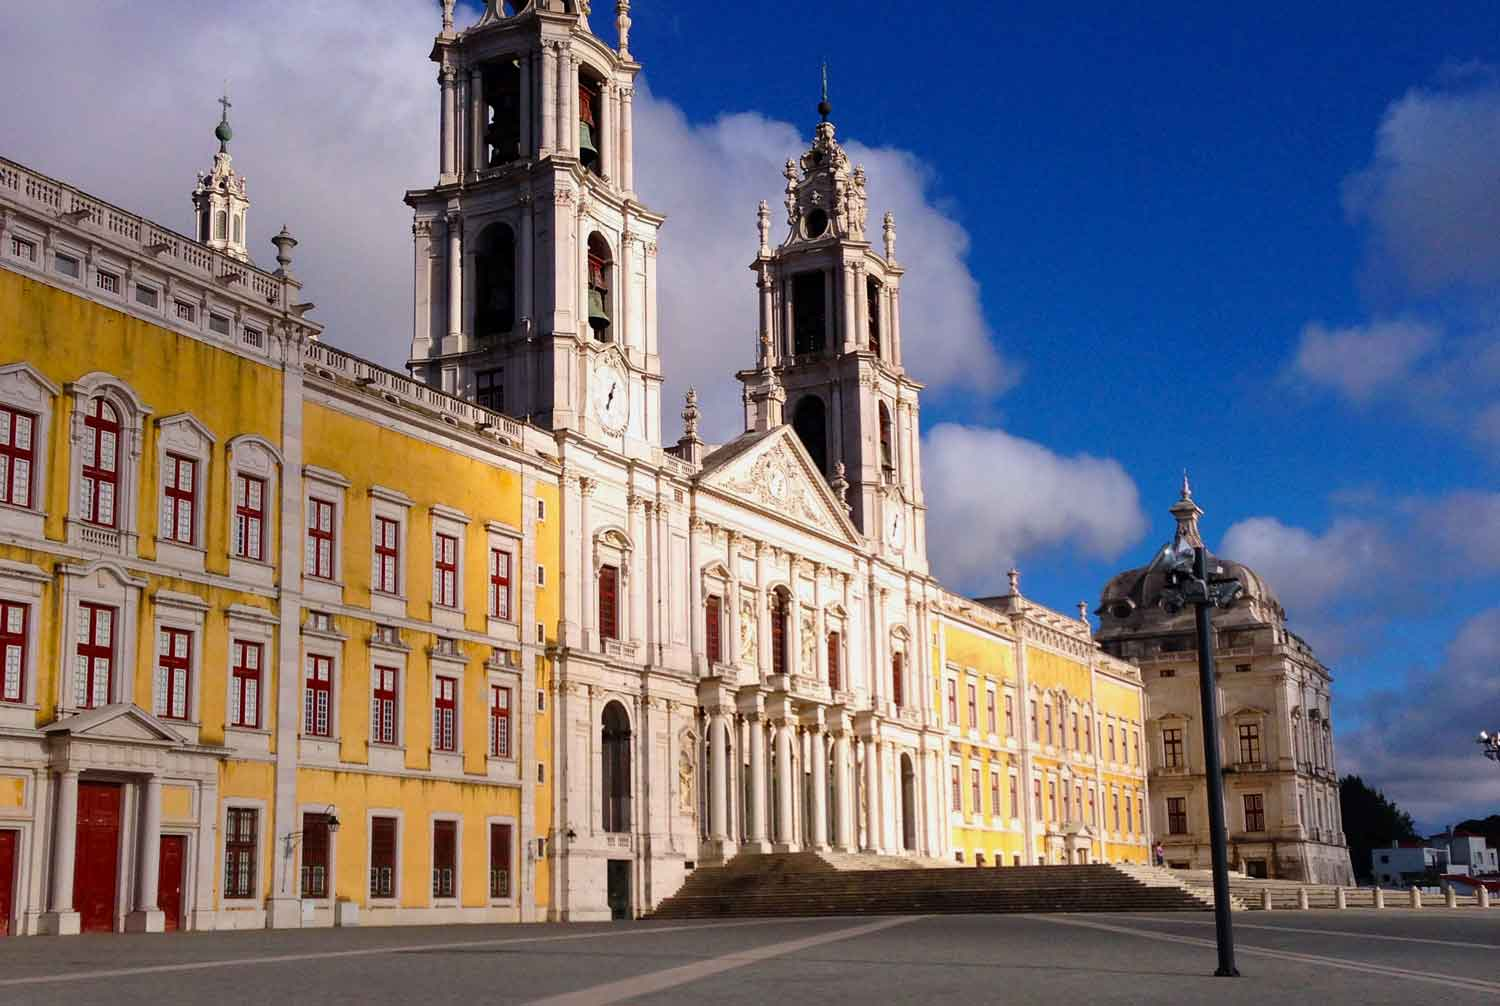 Mafra's village is 20 minutes away from us; its impressive palace shouldn't be missed!